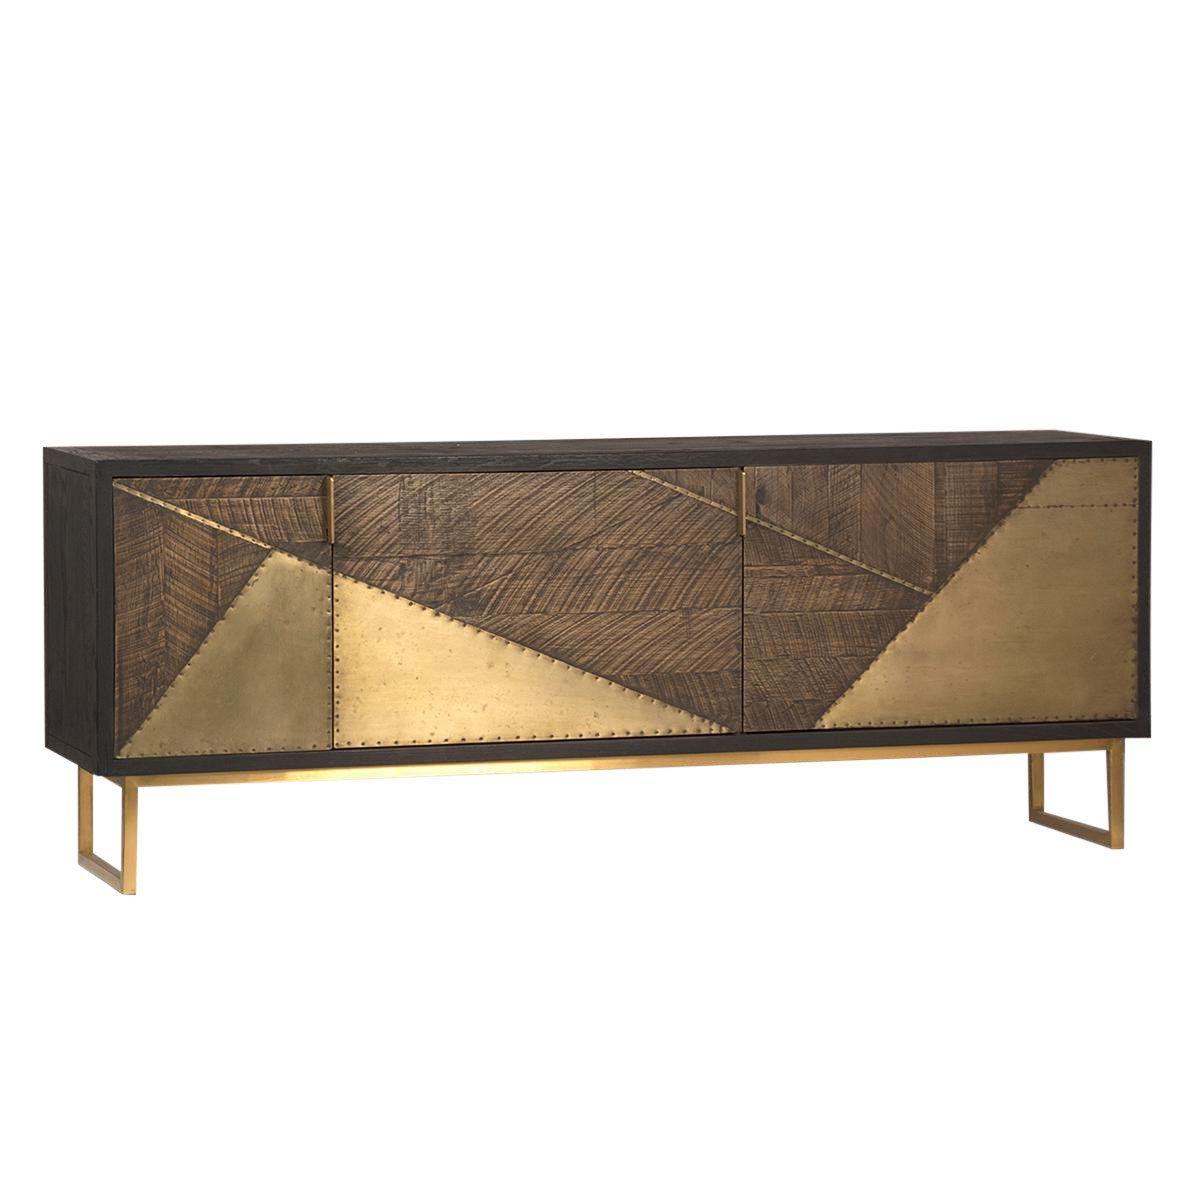 Davina Sideboard Sideboard Furniture Modern Sideboard Sideboard Decor